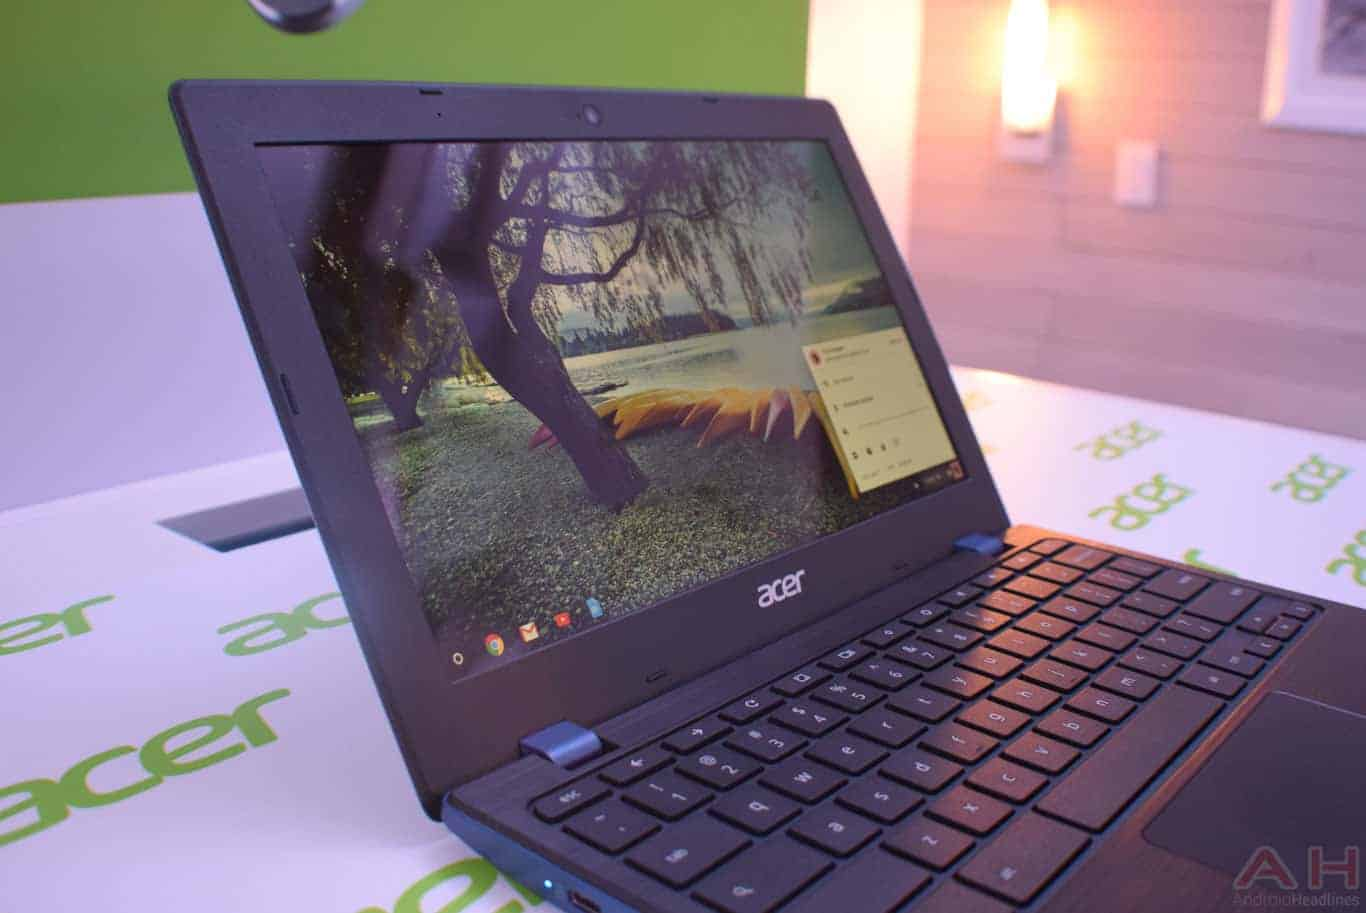 Acer Chromebook 11 CES 2018 AM AH 0035